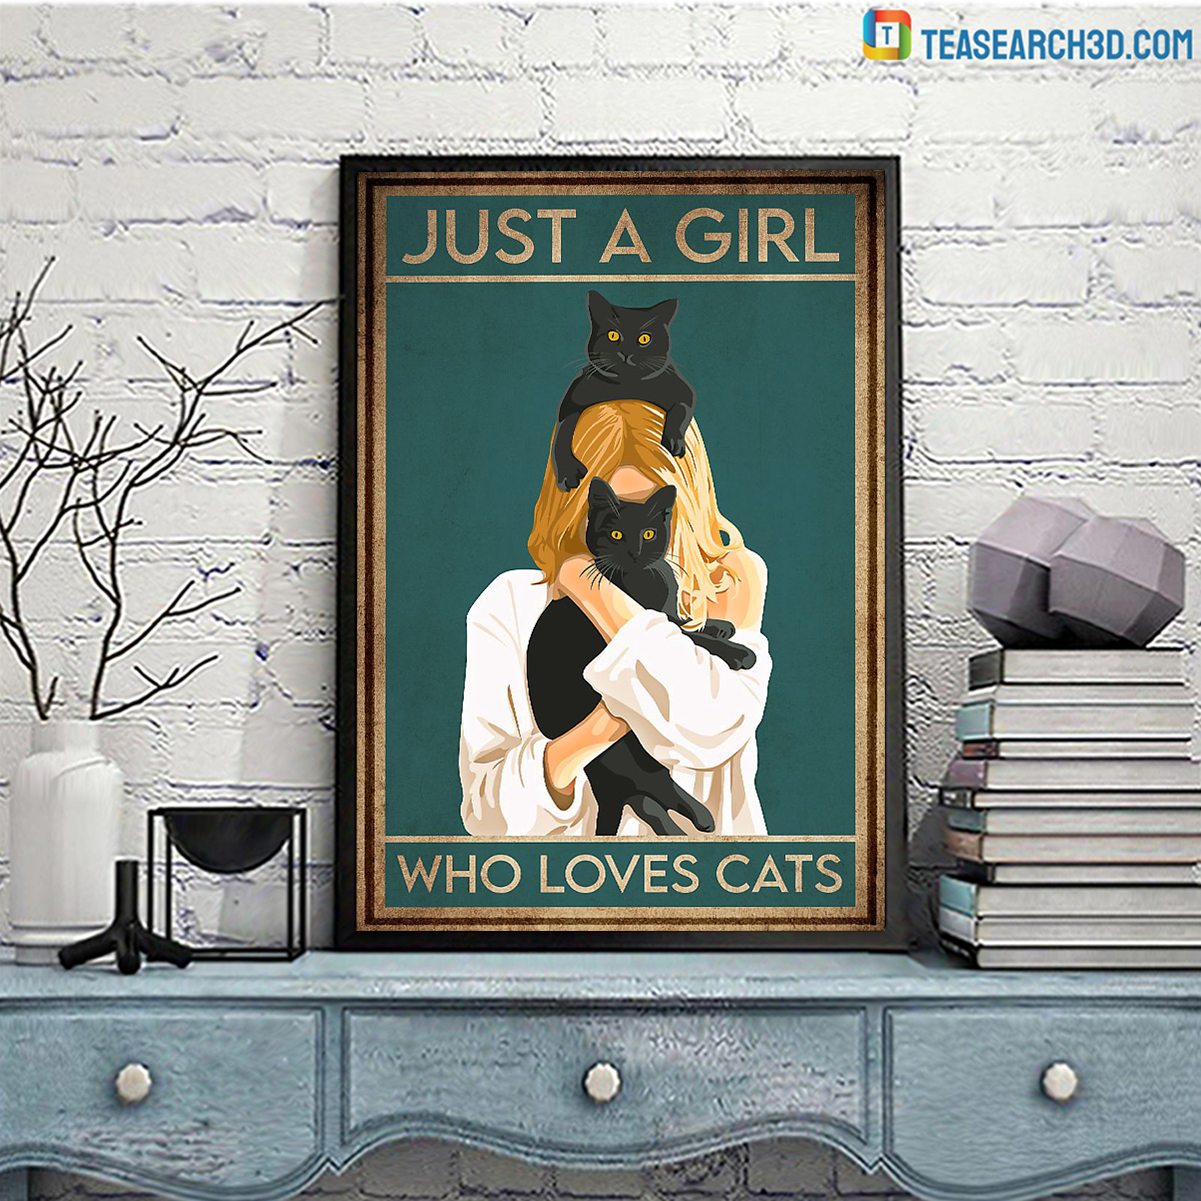 Just a girl who loves cats A3